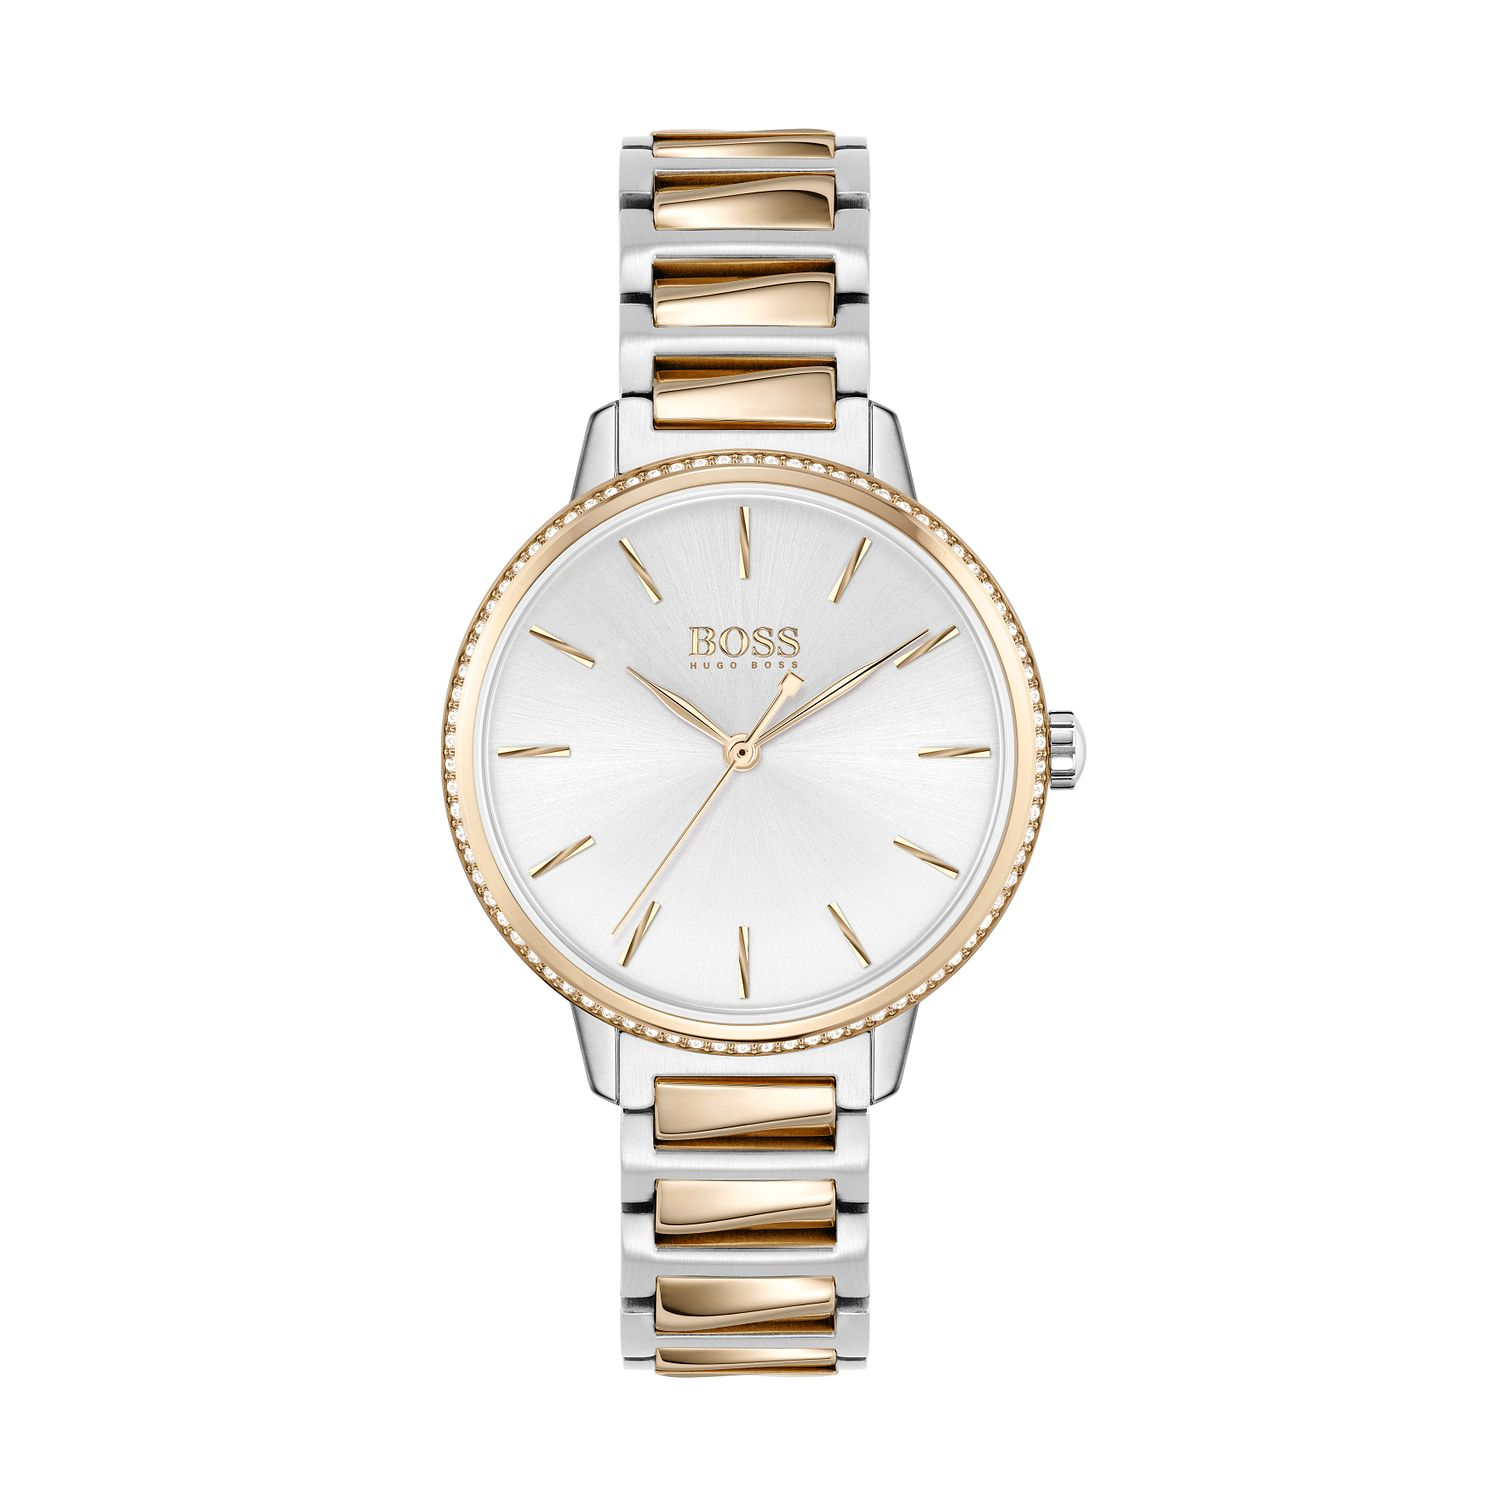 BOSS Signature Crystal Ladies' Two Tone Bracelet Watch - Product number 3847608